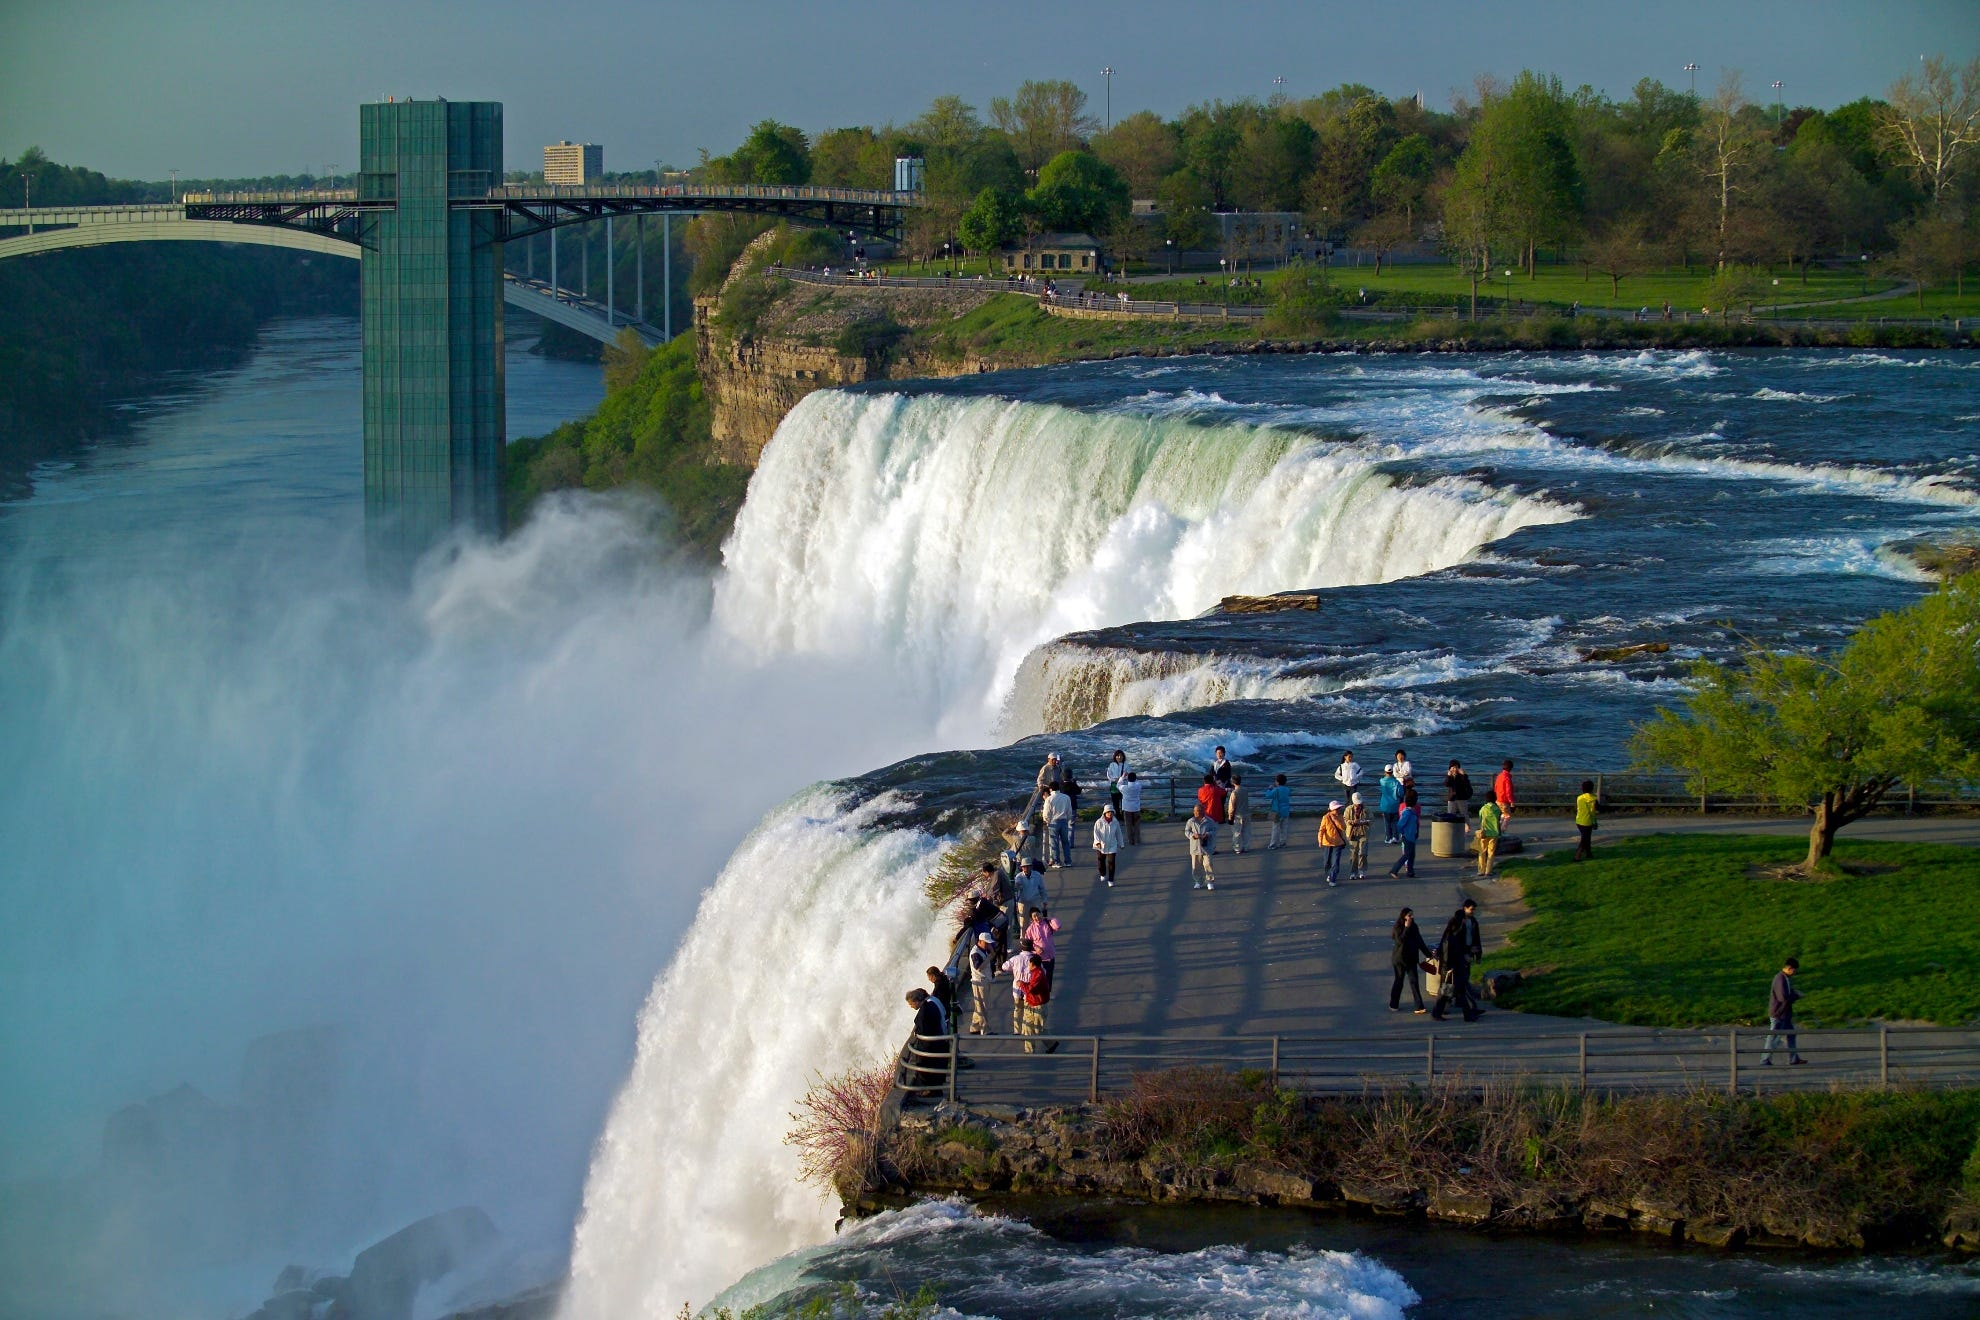 10 great American attractions overlooked by locals   USA Today